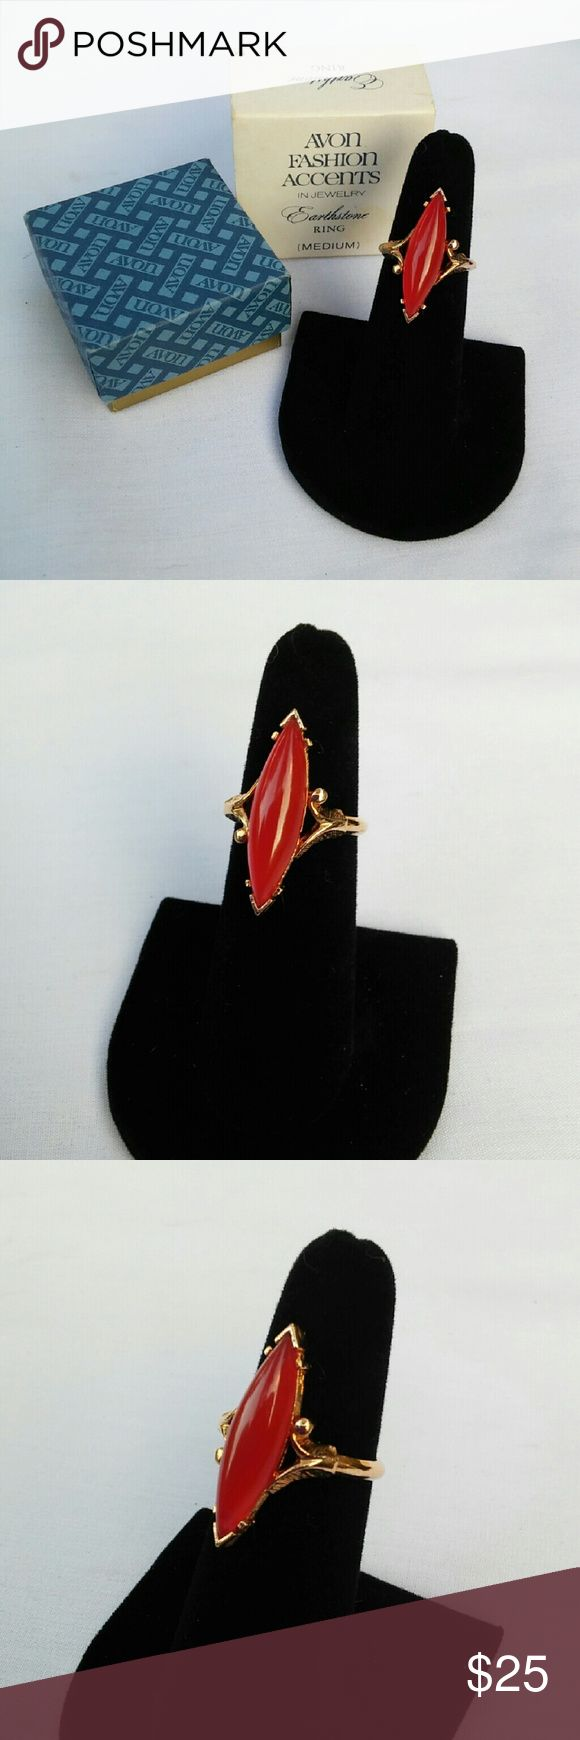 Vintage 1979 Faux Carnelian Ring New with Box Vintage ring with a large marquise shaped red/ orange stone by AVON Earthstone Line. Costume Jewelry Stone is glass & mimics the look of carnelian. Band is gold tone & self-adjusting with two metal tabs on the inside of the band to give you a perfect fit! 1979 is the exact year this particular design was produced. A lovely retro piece of statement costume jewelry. New in original box. Length of stone - 1 1/8inches. Adjustable fit from about a…